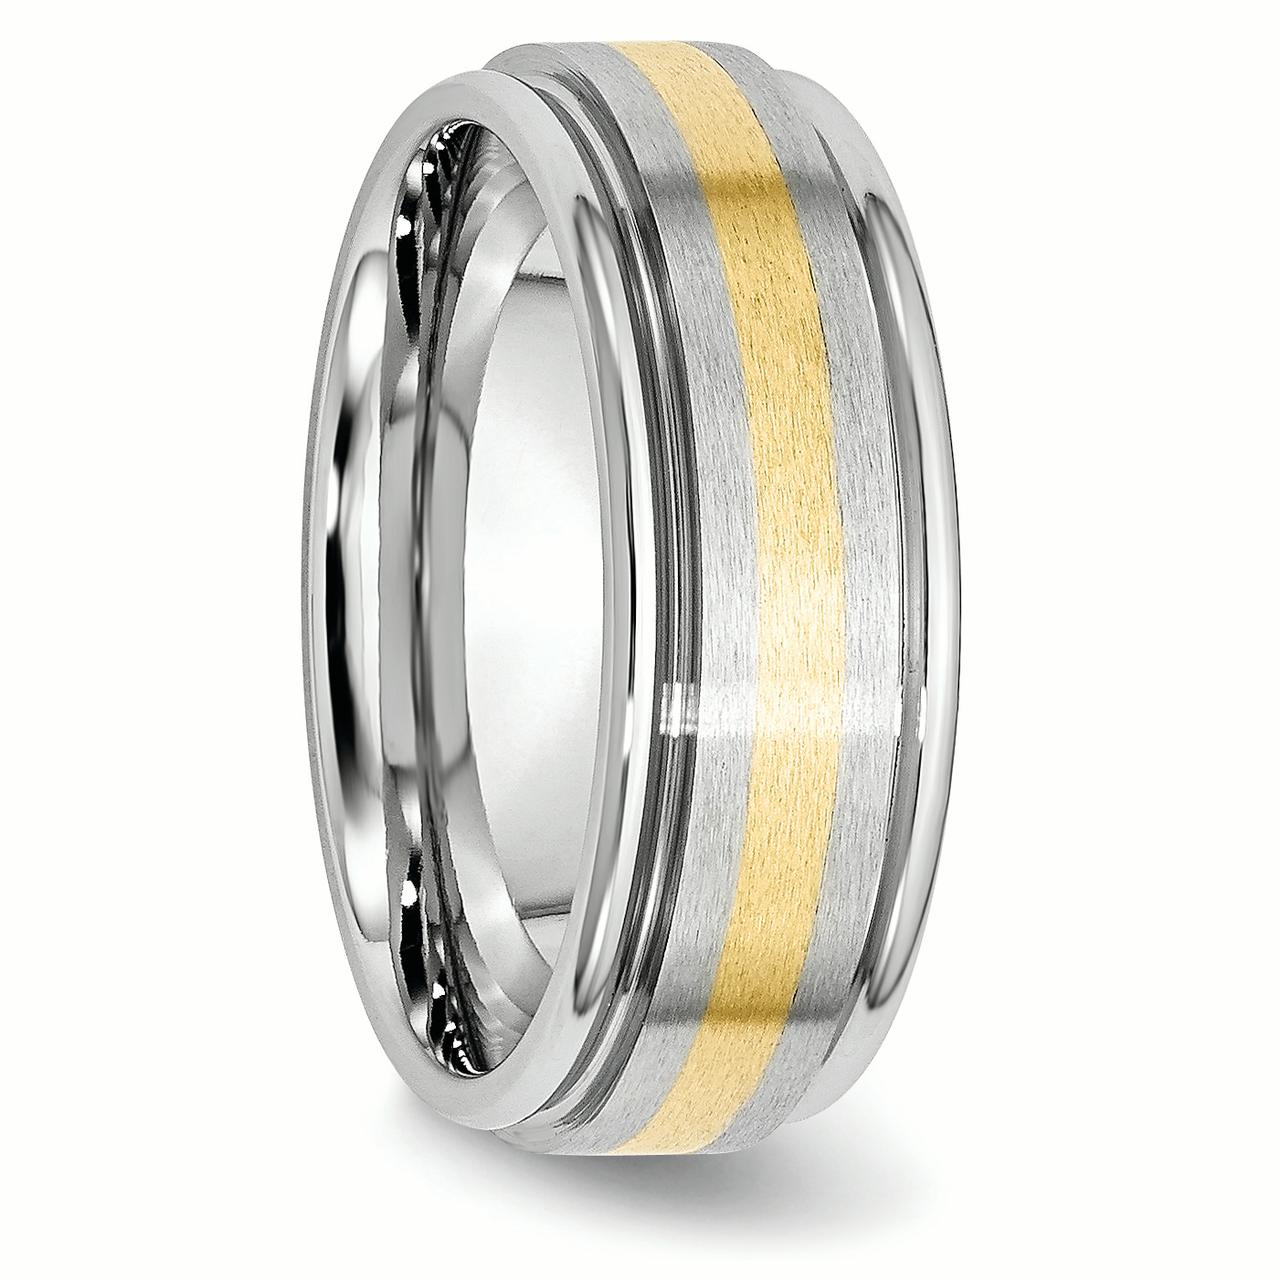 Cobalt 14k Gold Inlay 8mm Wedding Ring Band Size 11.00 Precious Metal Fine Jewelry Gifts For Women For Her - image 2 de 6